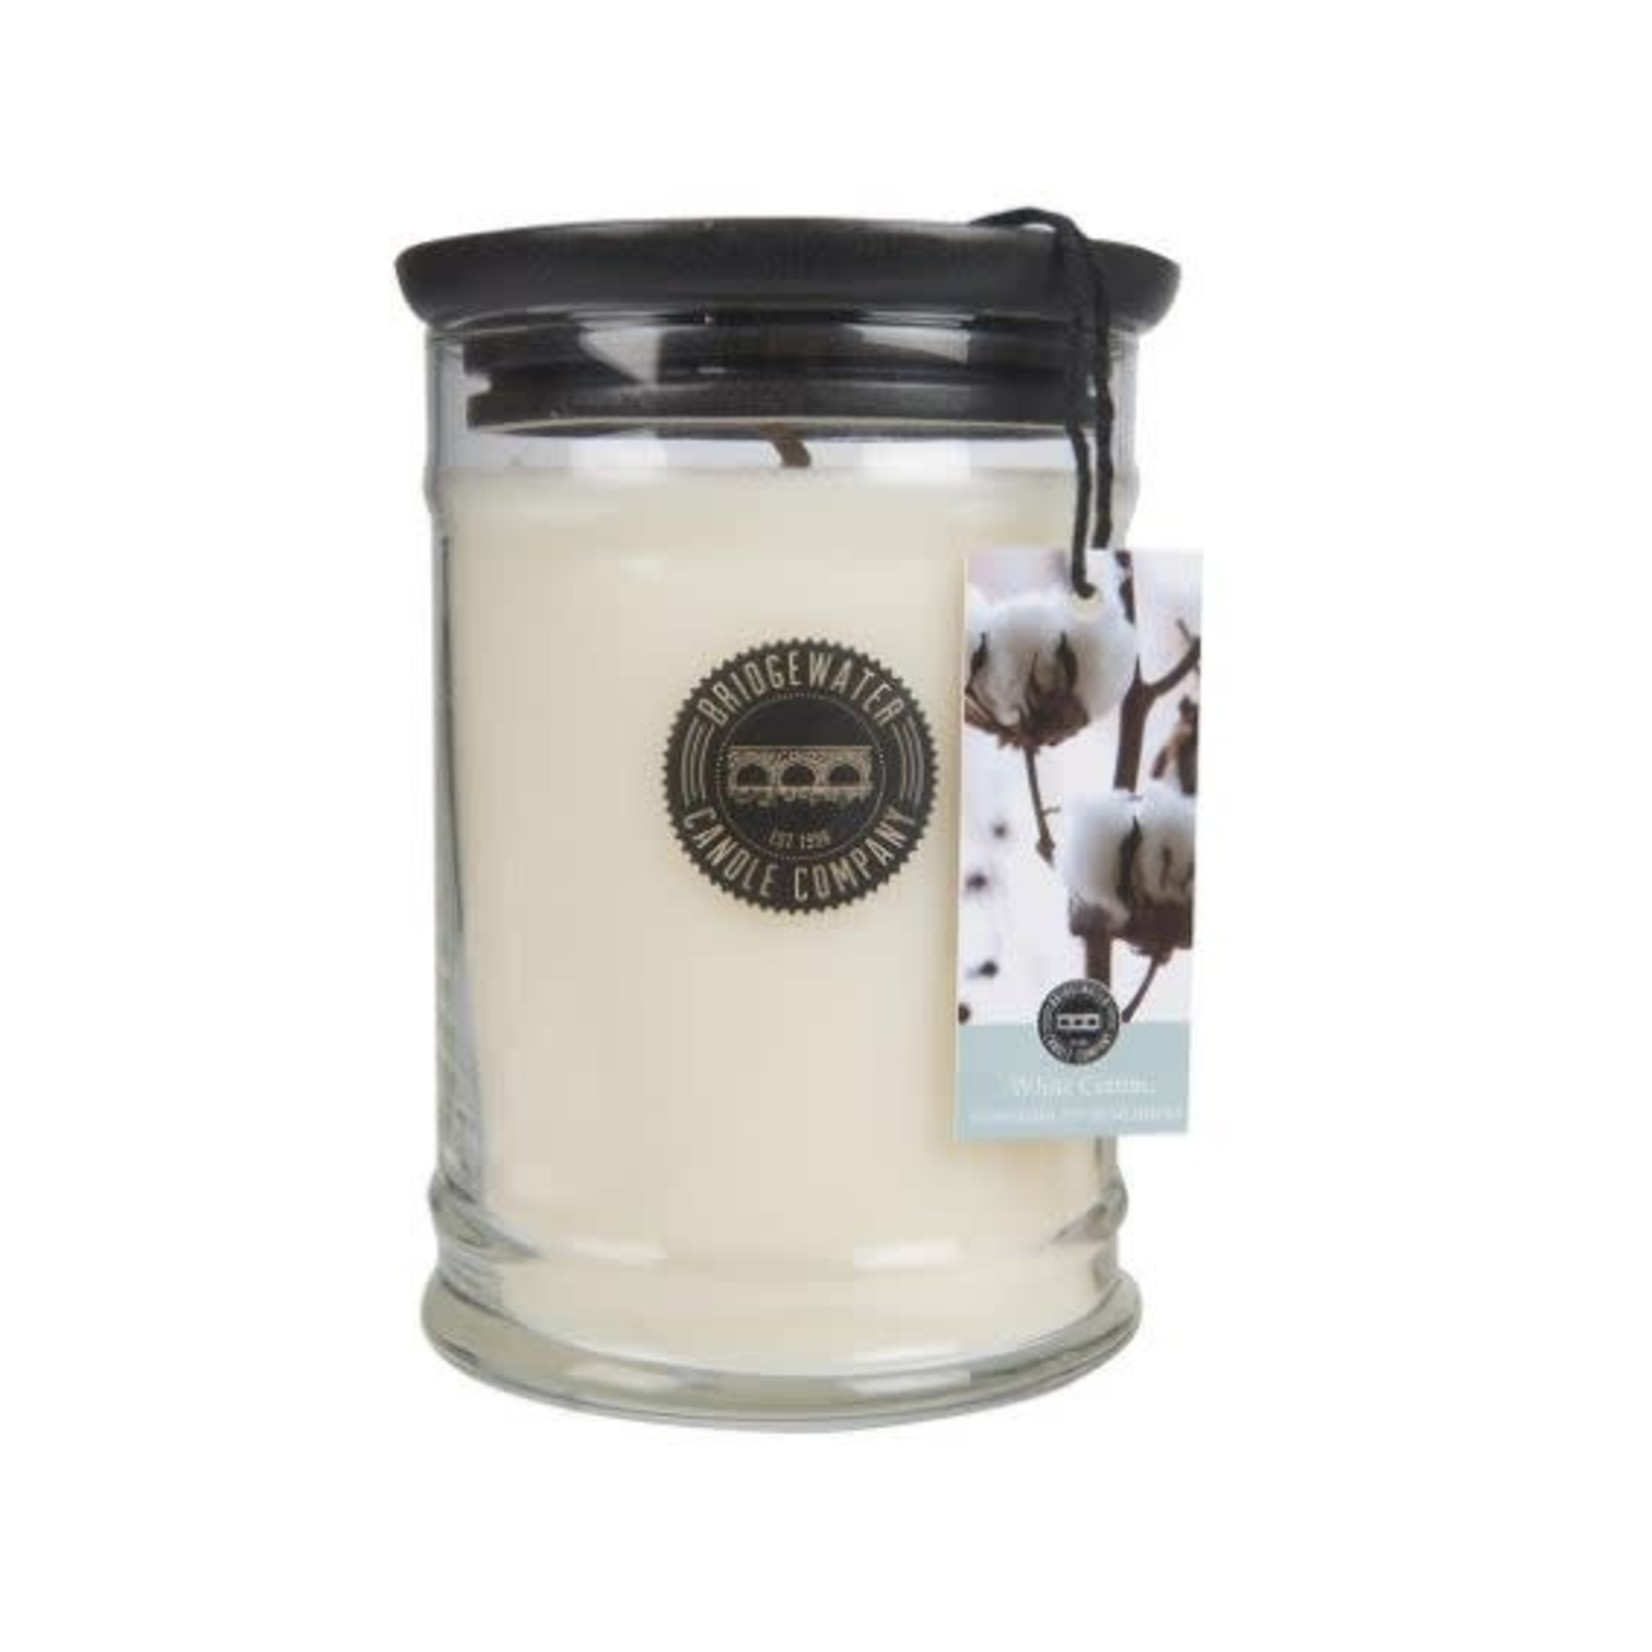 Bridgewater Candle Company Bridgewater Jar Large White Cotton